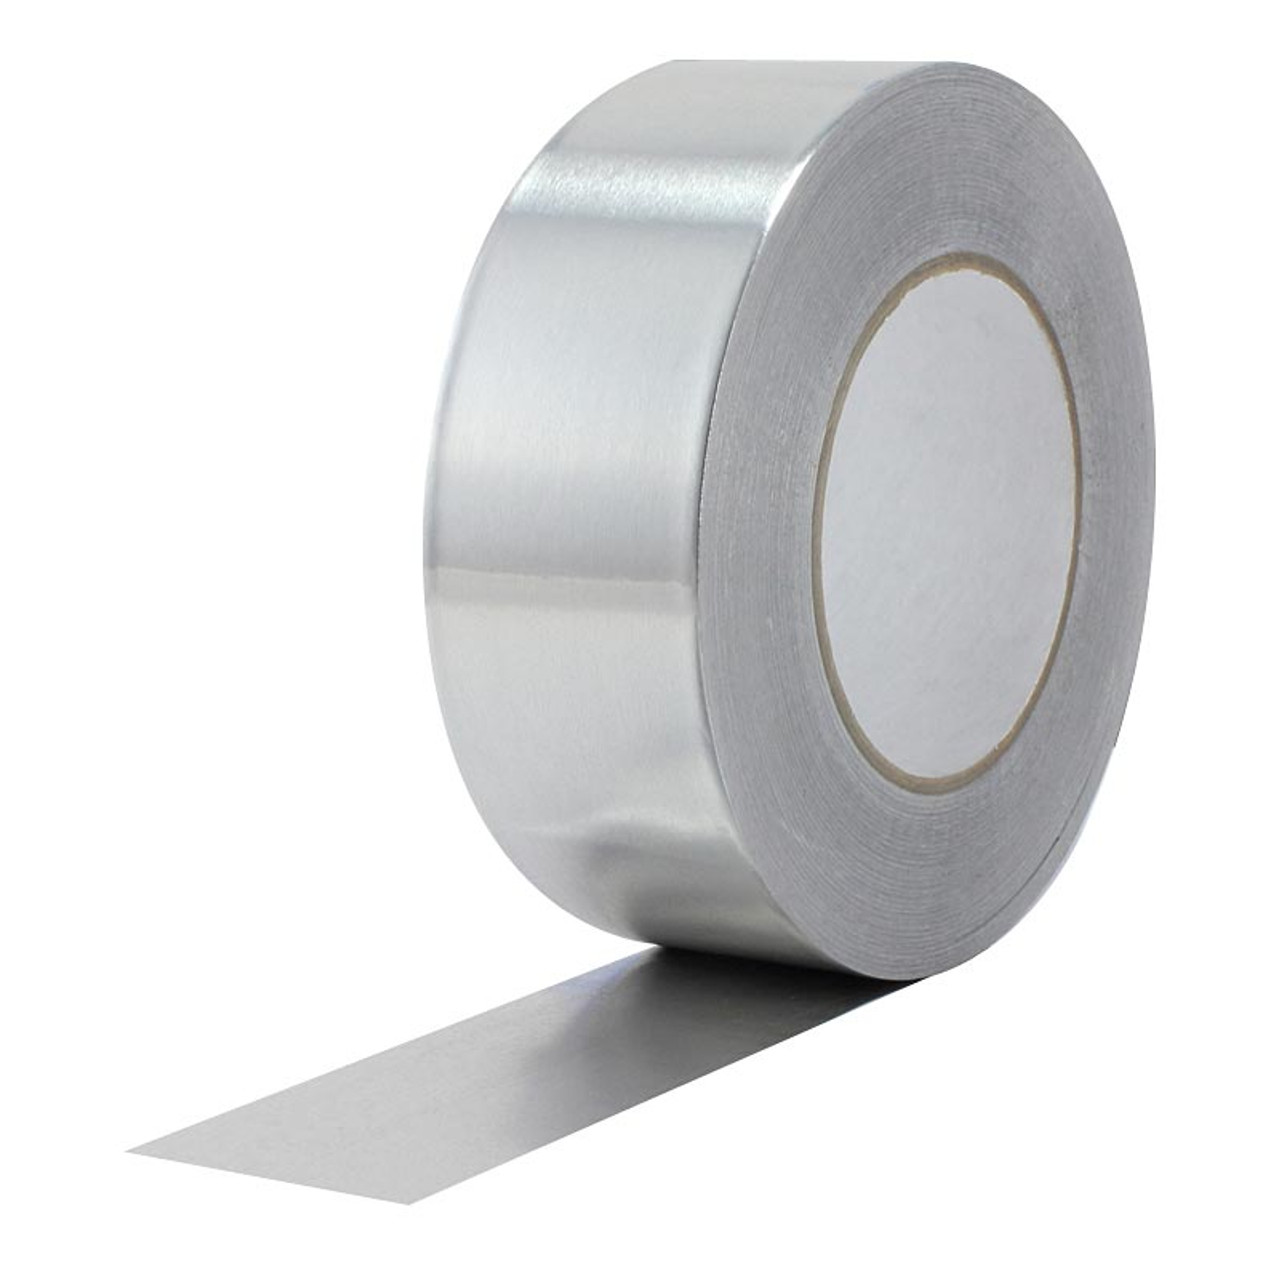 "Metal Foil Tape 3"" x 50 Yards"